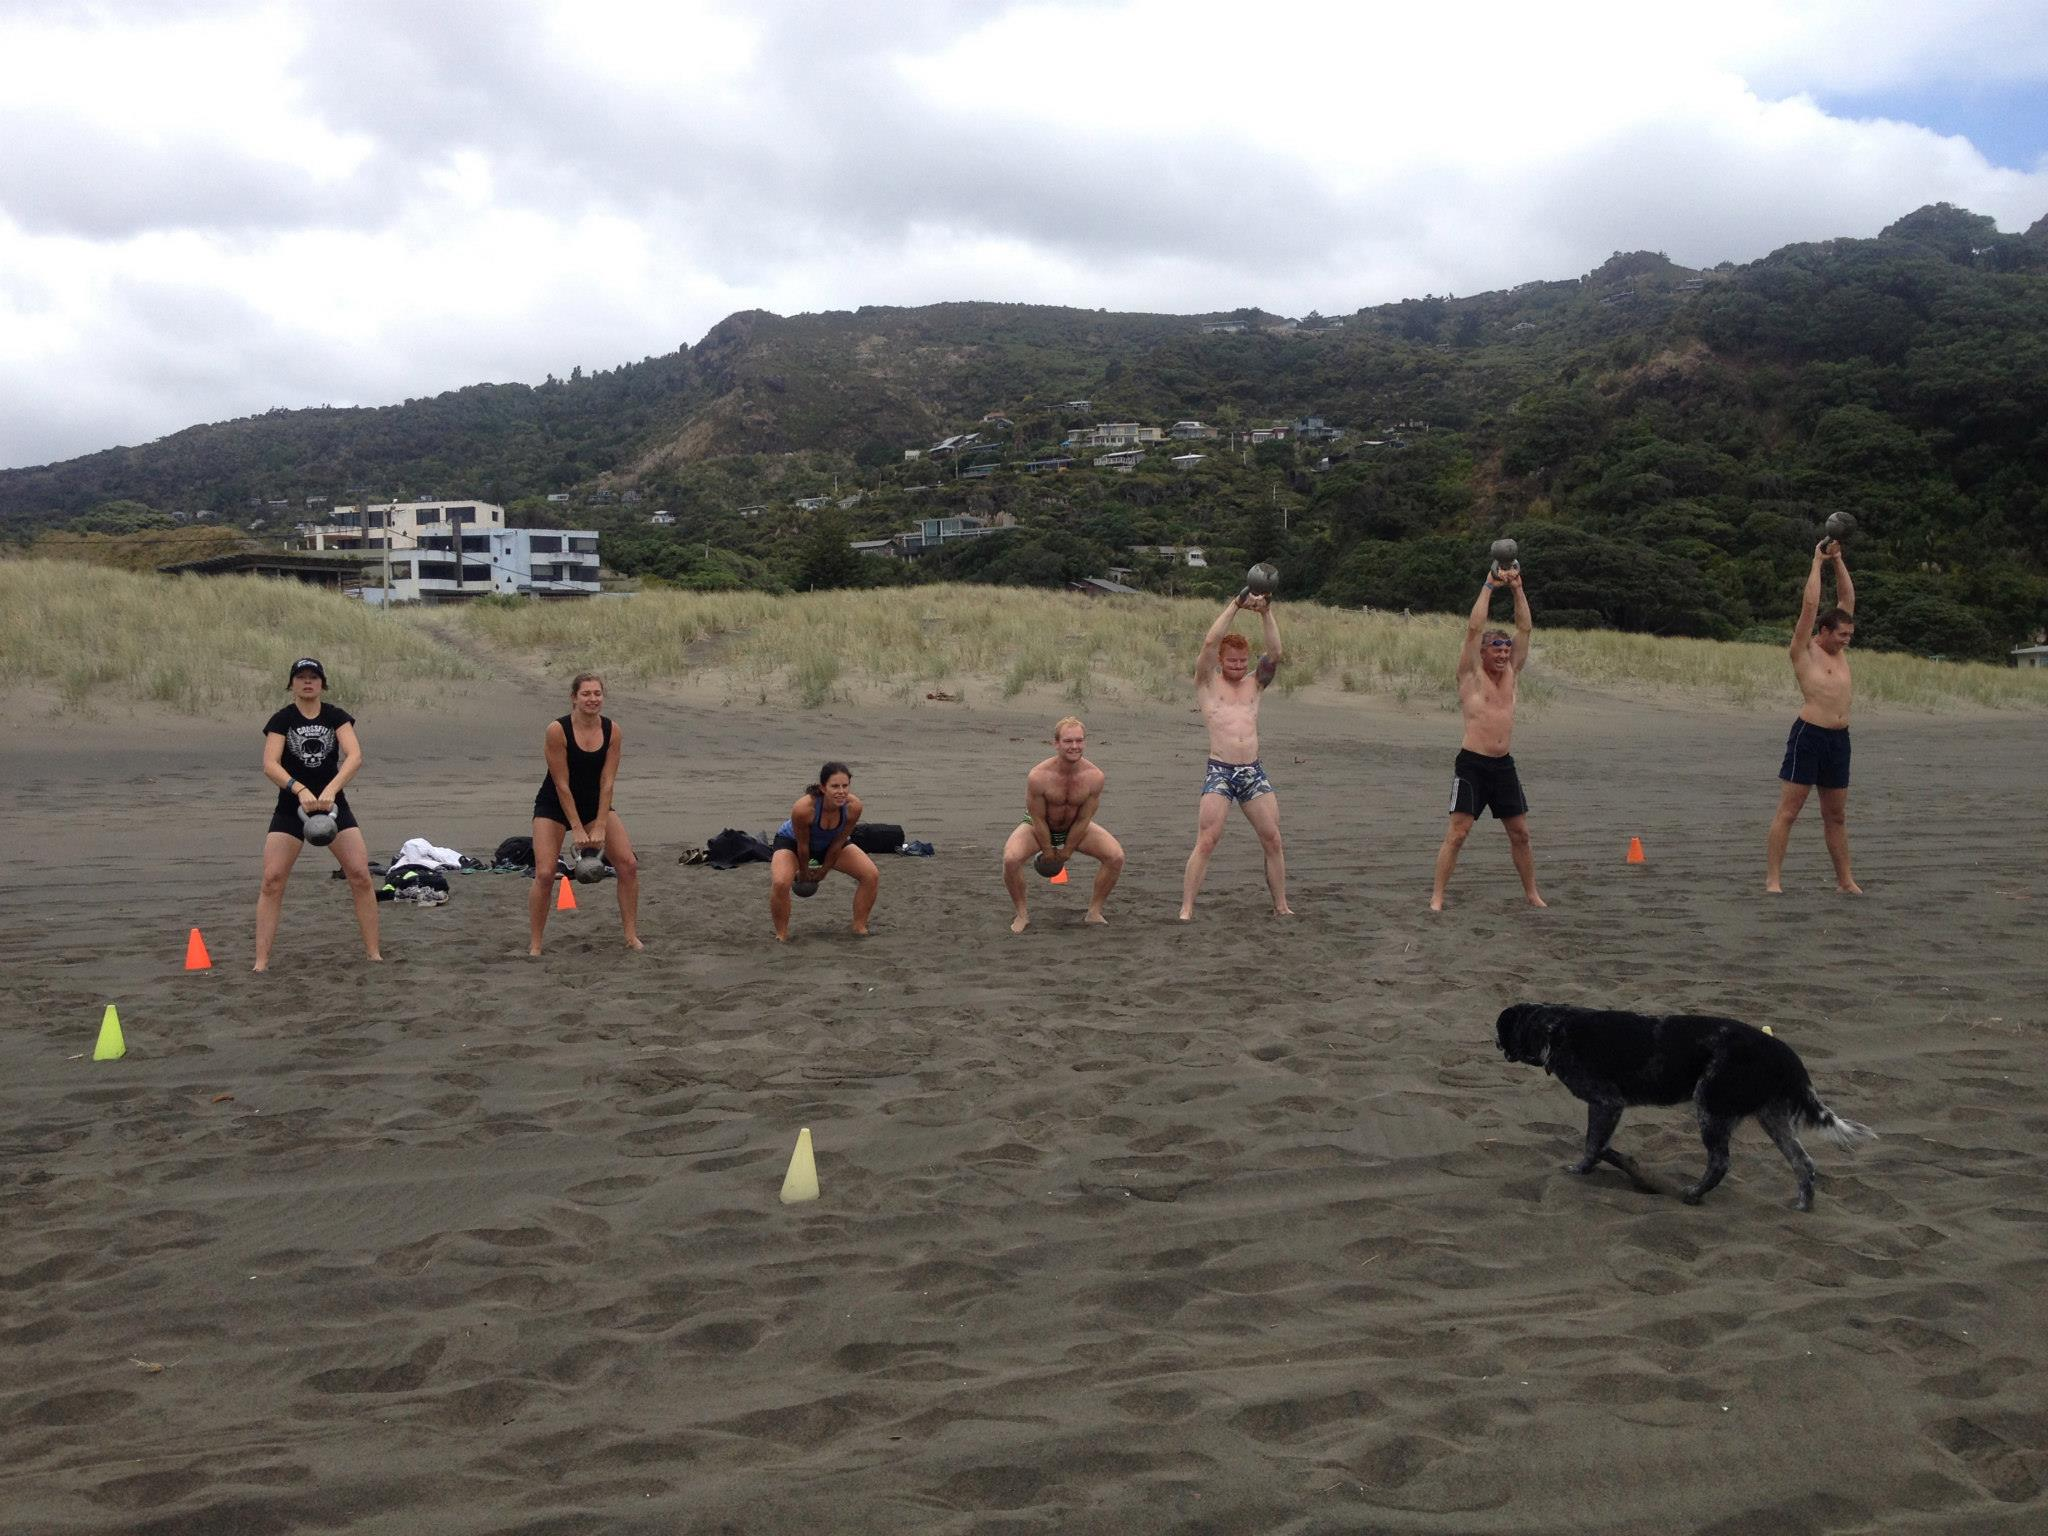 The Piha Throwdown Crew ripping into the second wod during Saturdays mammoth day of energy sapping soul destroying beach and bush workouts. Big thanks to Coach Ant who structured an awesome day for those who attended . And today is the final day to get your 14.1 score in. Well done to all those who've  faced the savagery already and in some cases improved considerably in their second shot at it!